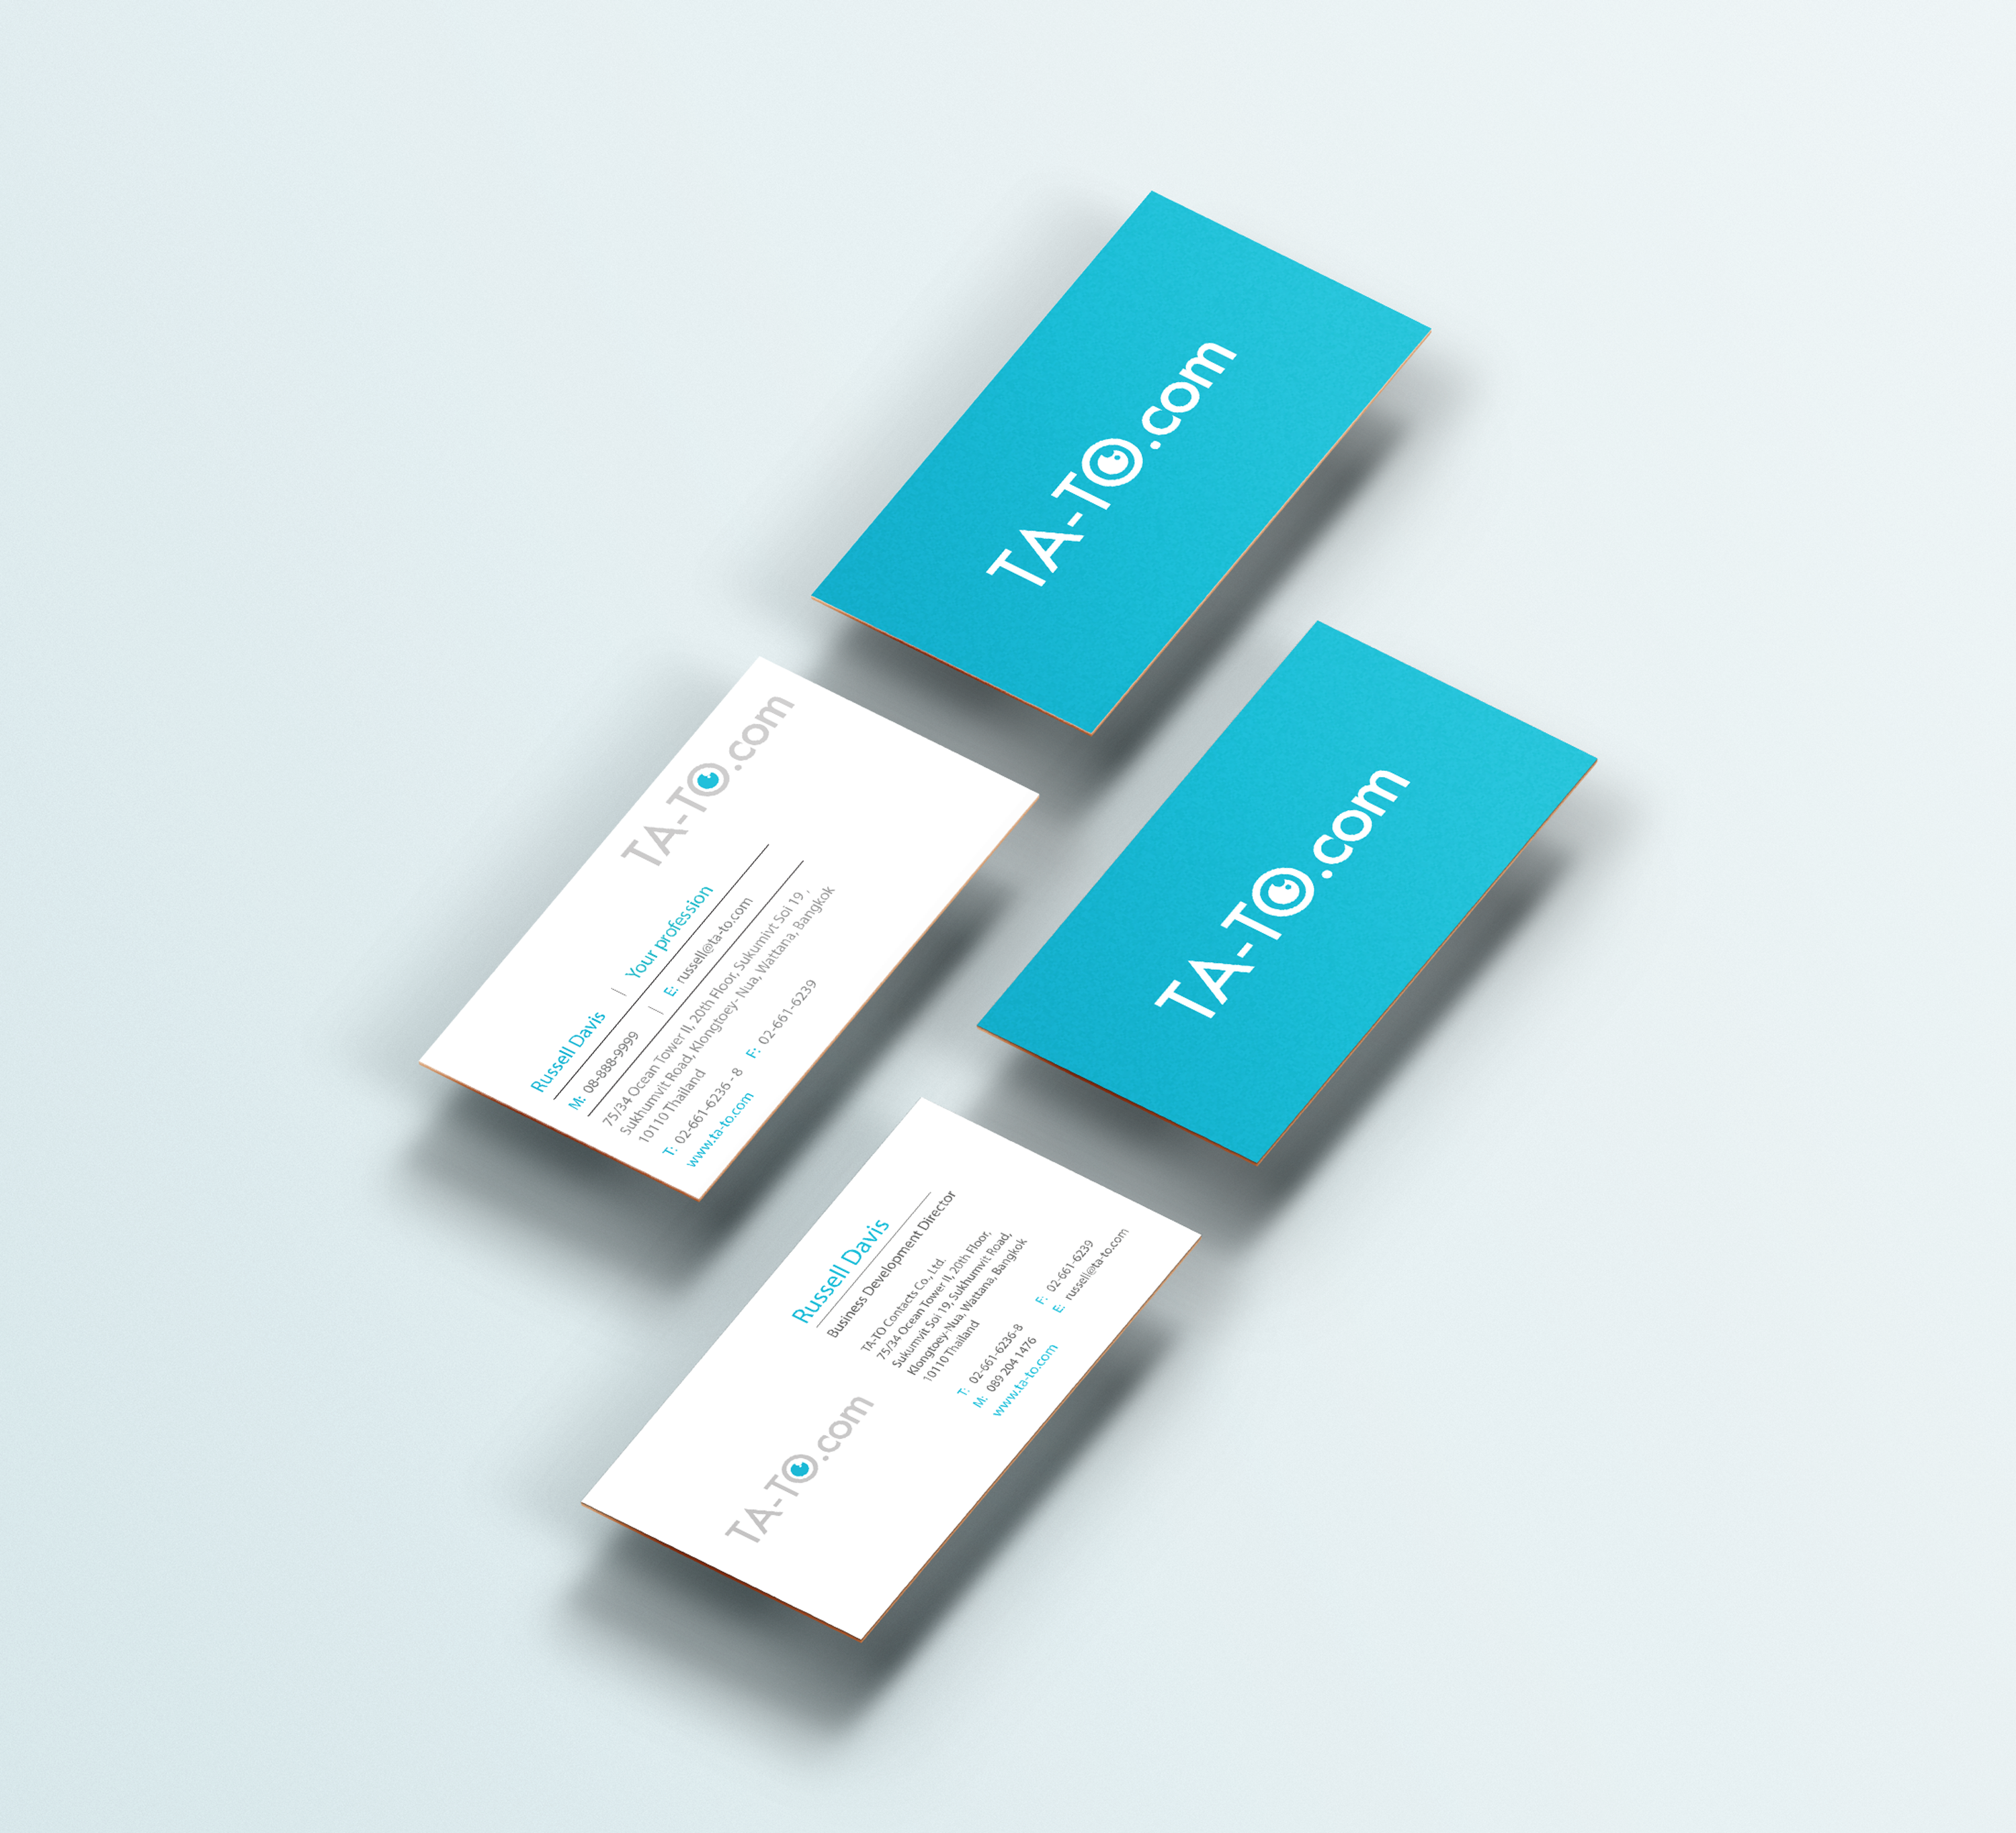 Business card design tato contact lens businesscard design business card design tato contact lens businesscard design corporate website reheart Images